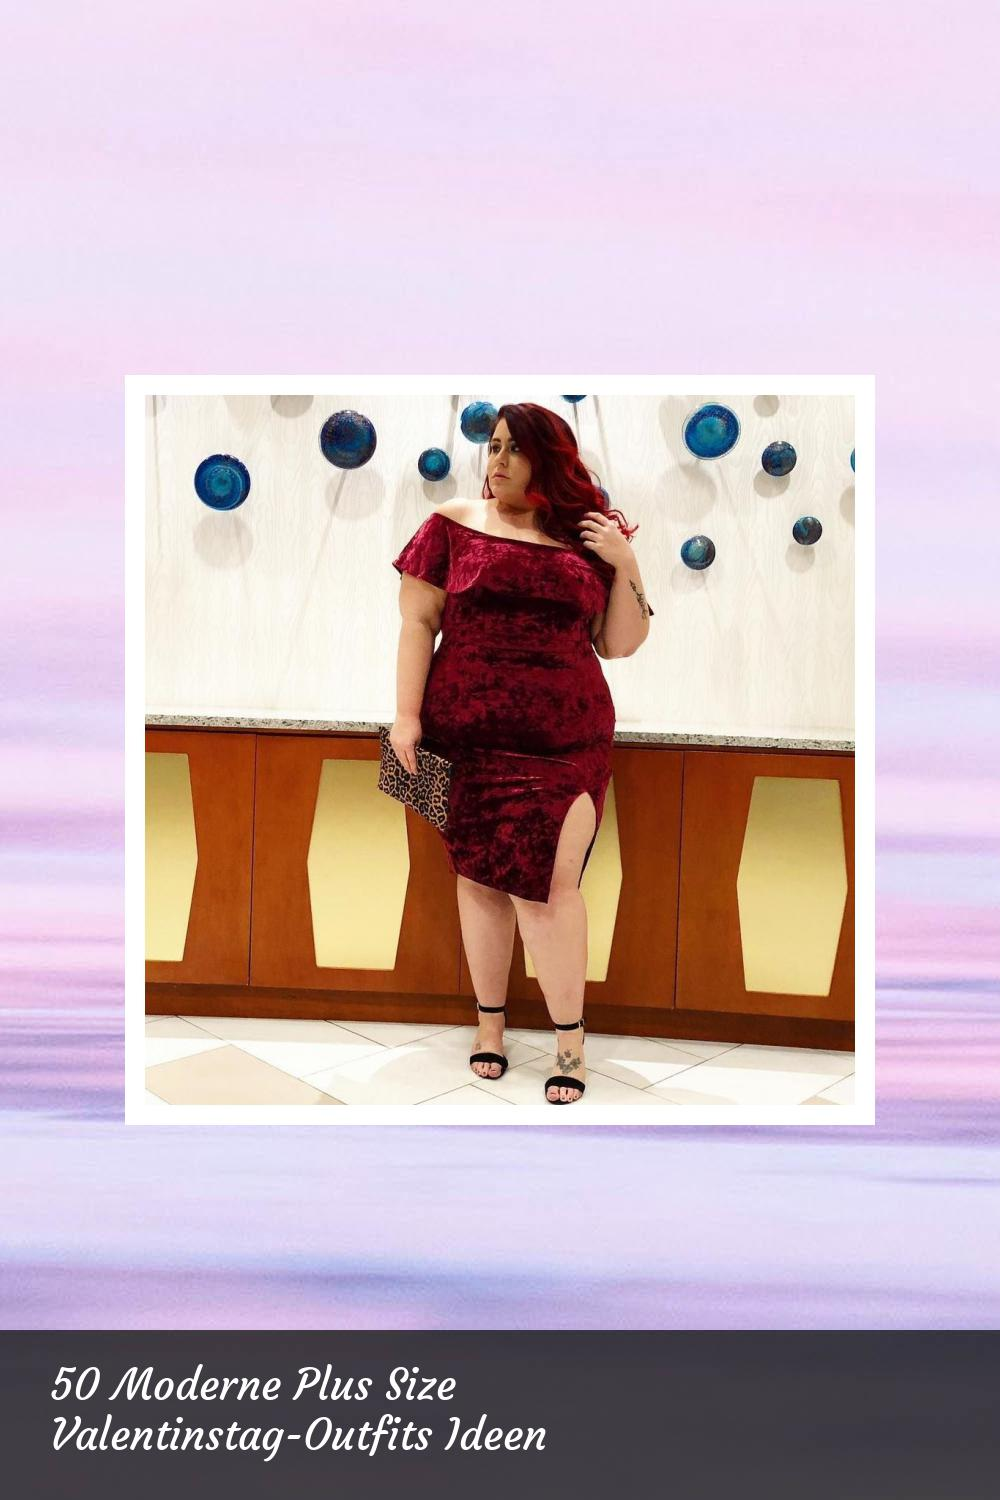 50 Moderne Plus Size Valentinstag-Outfits Ideen 9